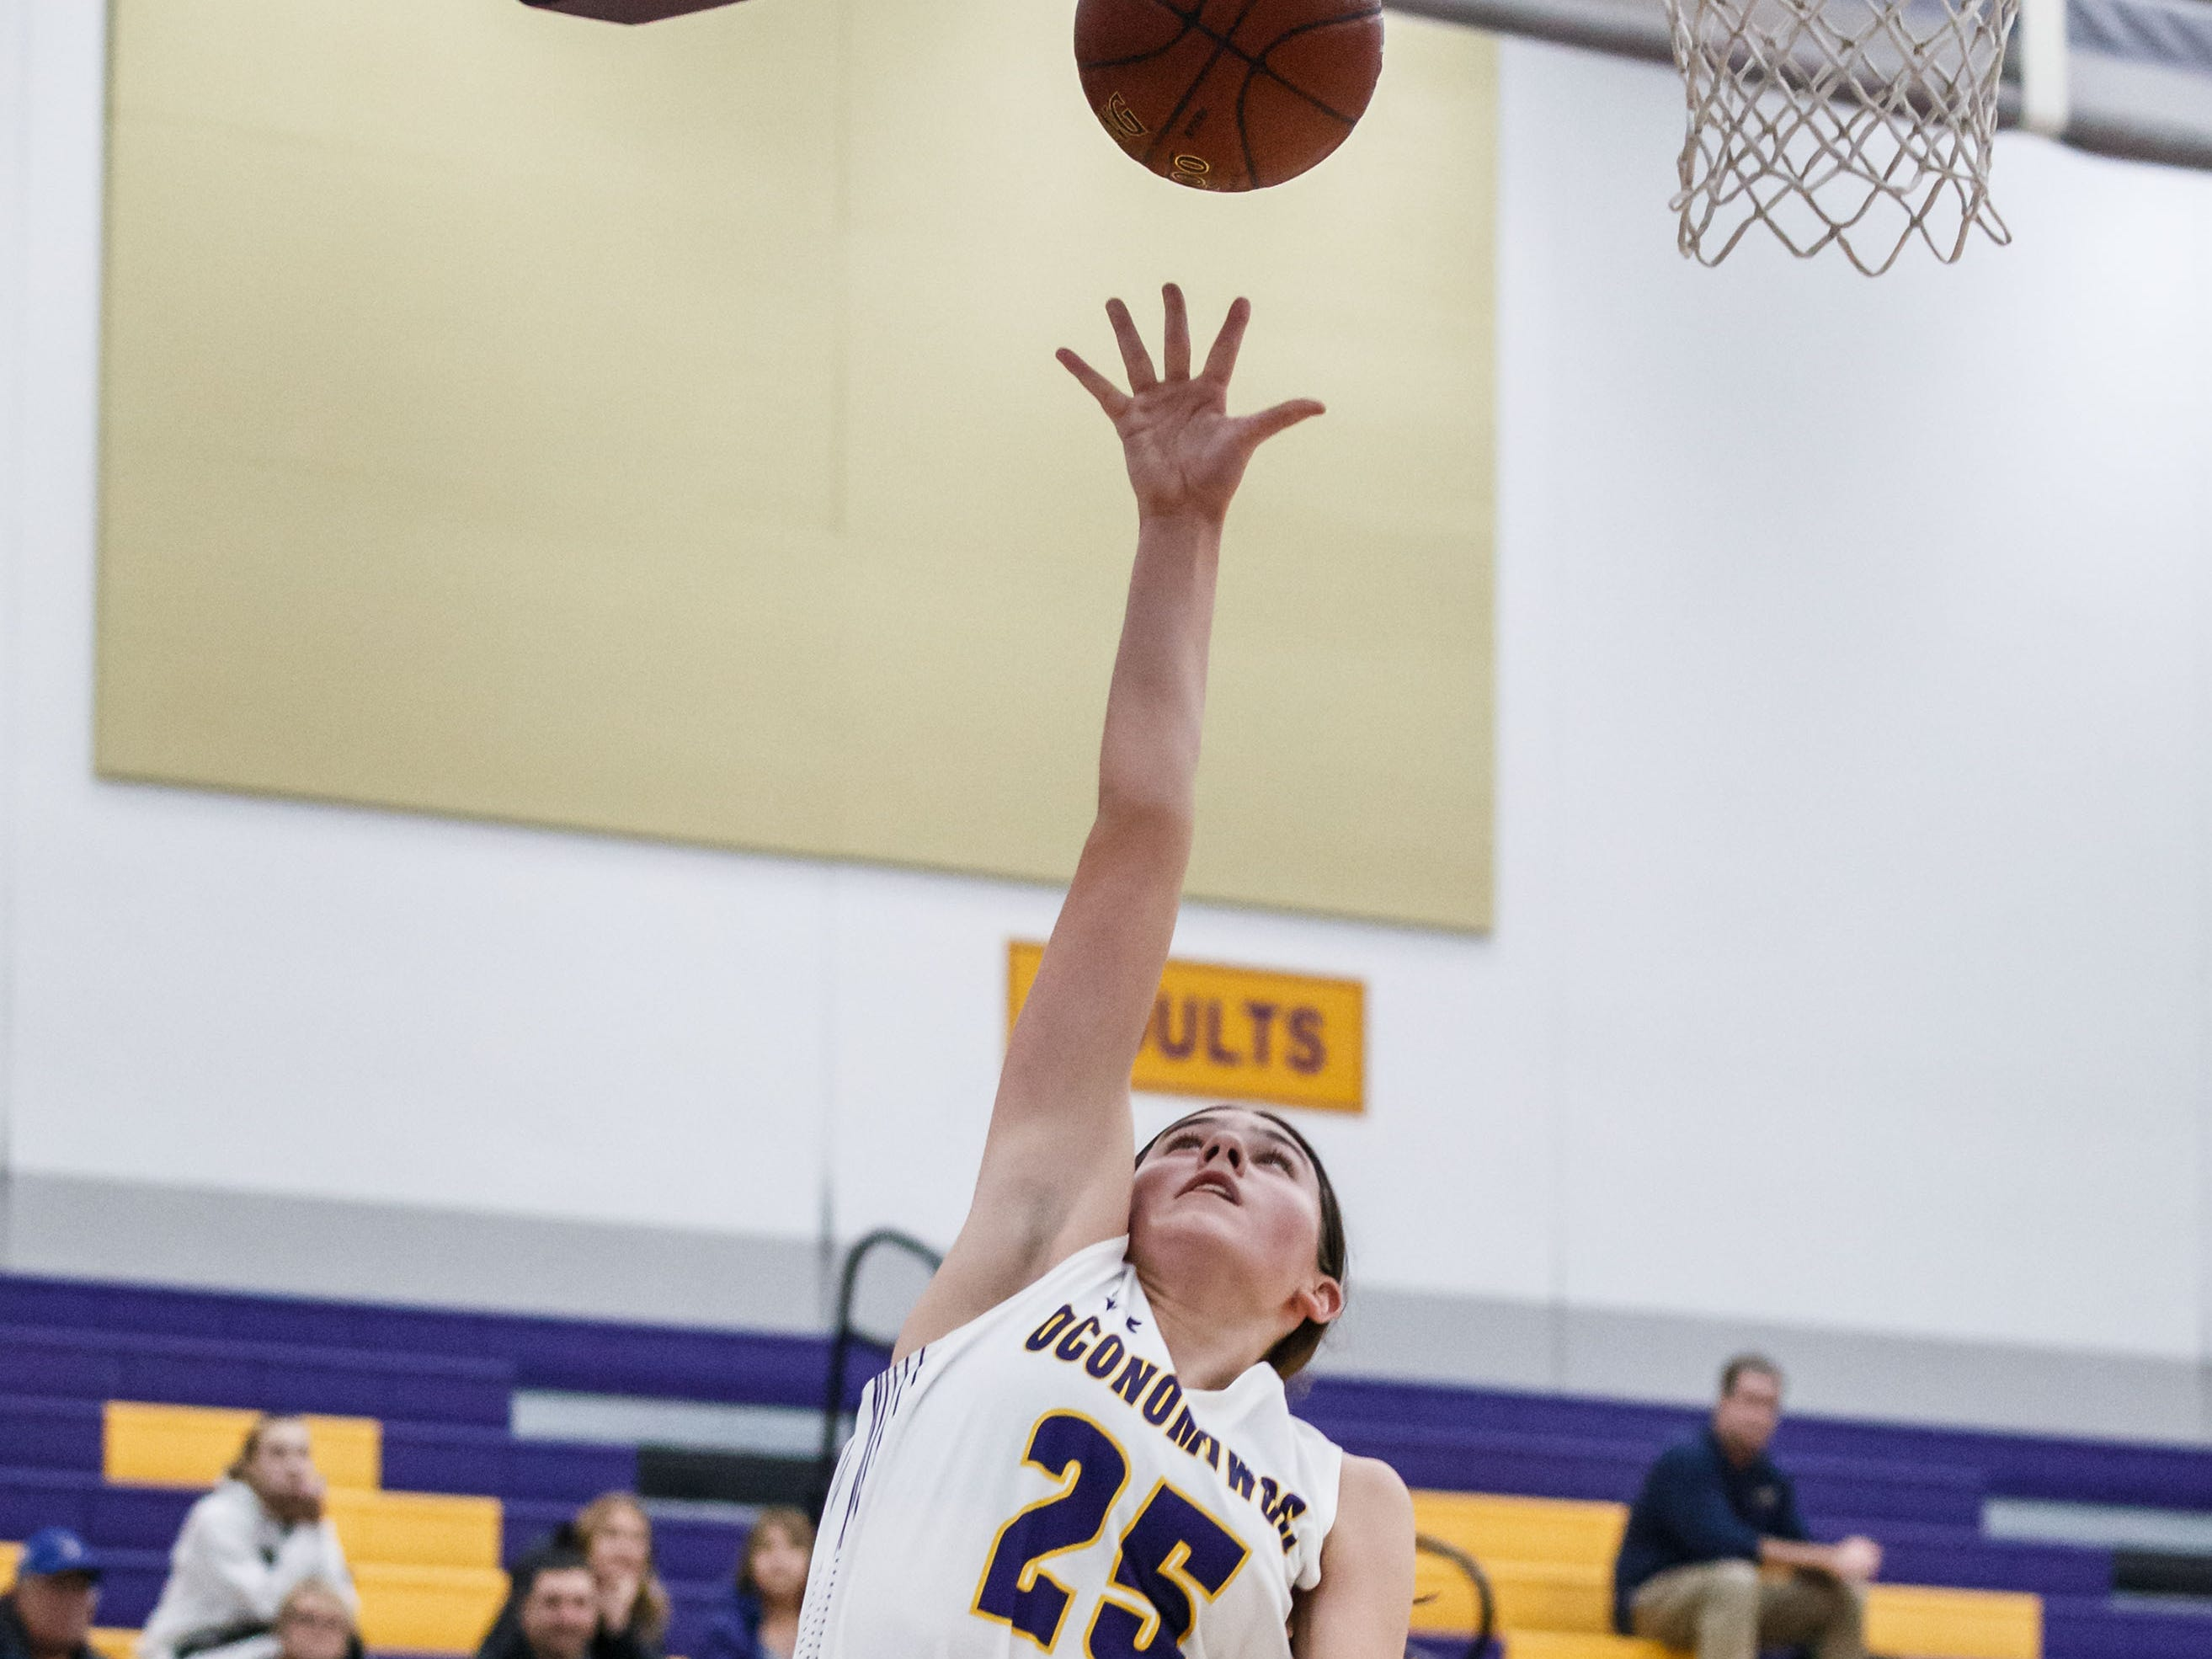 Oconomowoc freshman Natalie Gricius (25) drives in for a layup during the game at home against Franklin on Monday, Nov. 19, 2018.